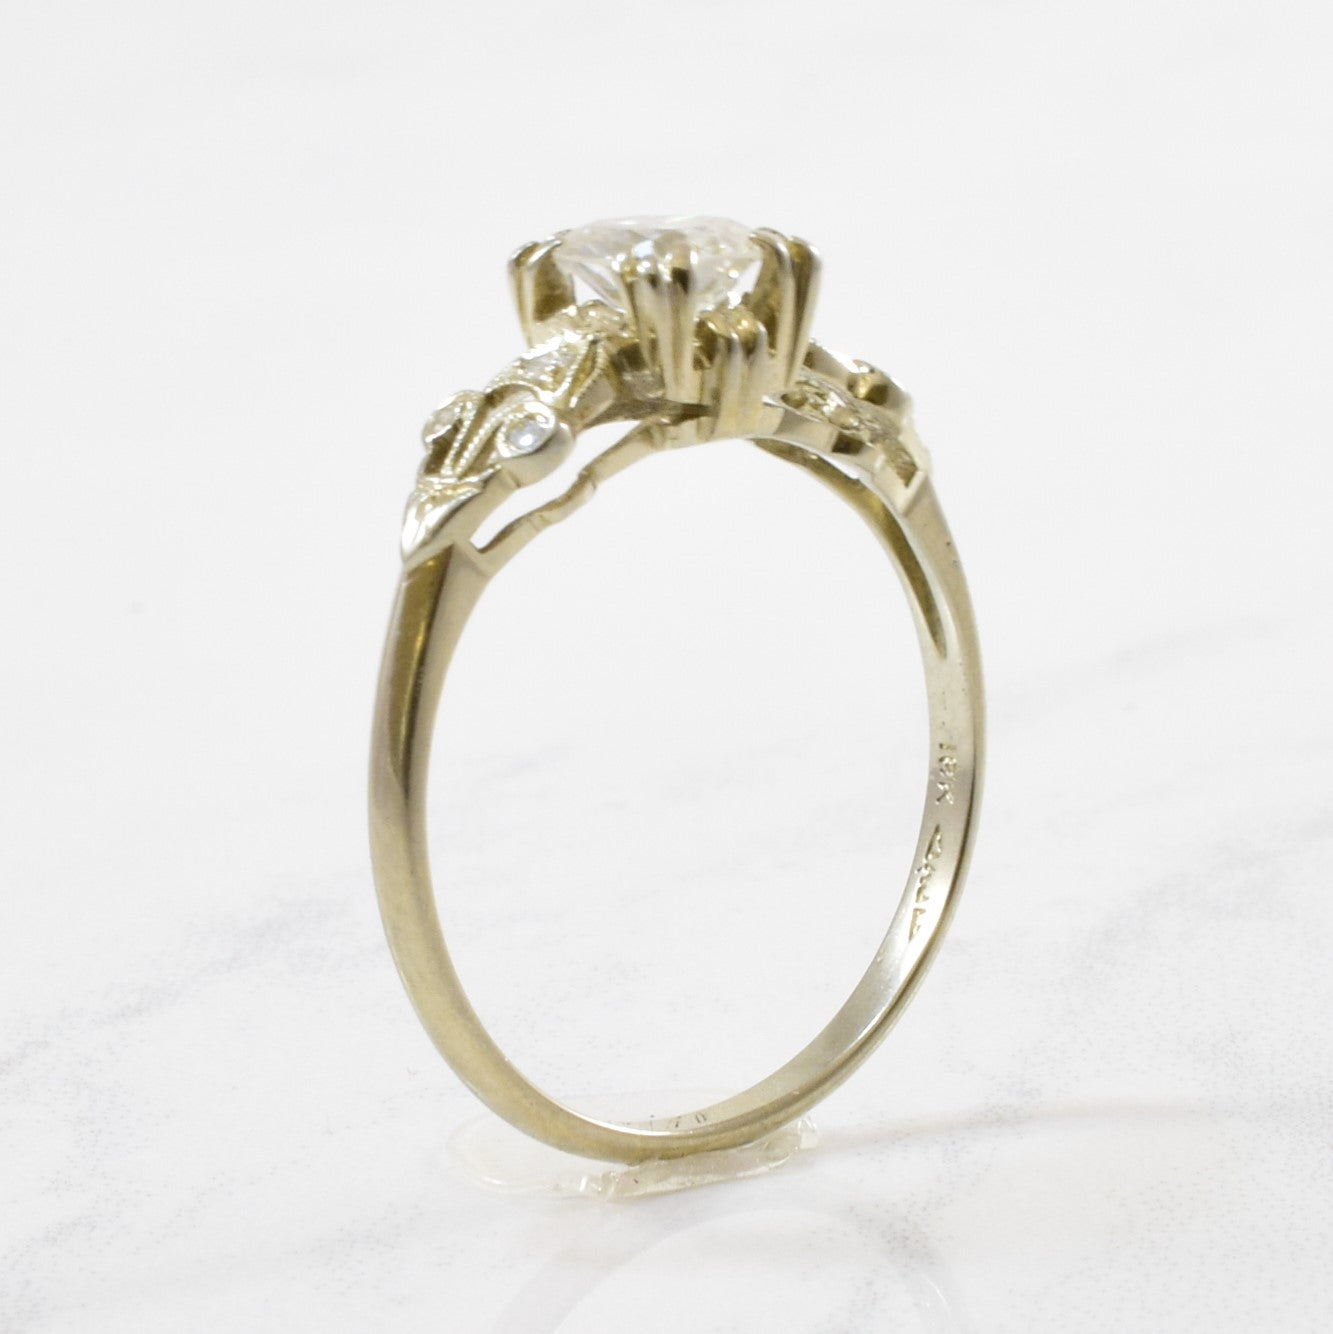 Intricate Retro Era Engagement Ring | 0.68 ctw | SZ 7.5 |